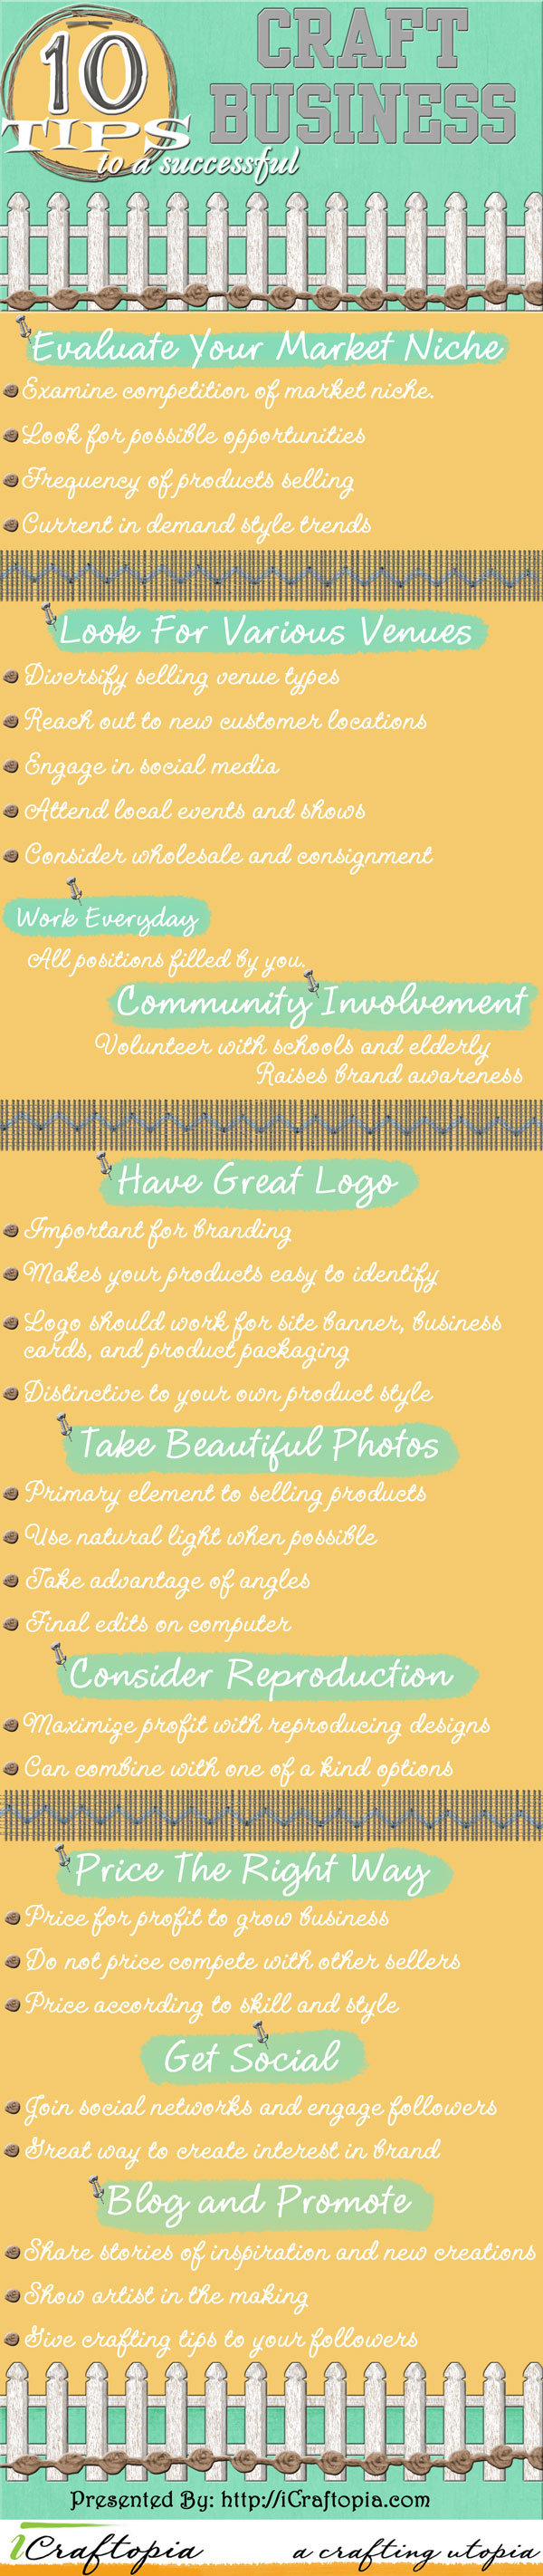 10-Tips-to-a-Successful-Craft-Business-Infographic